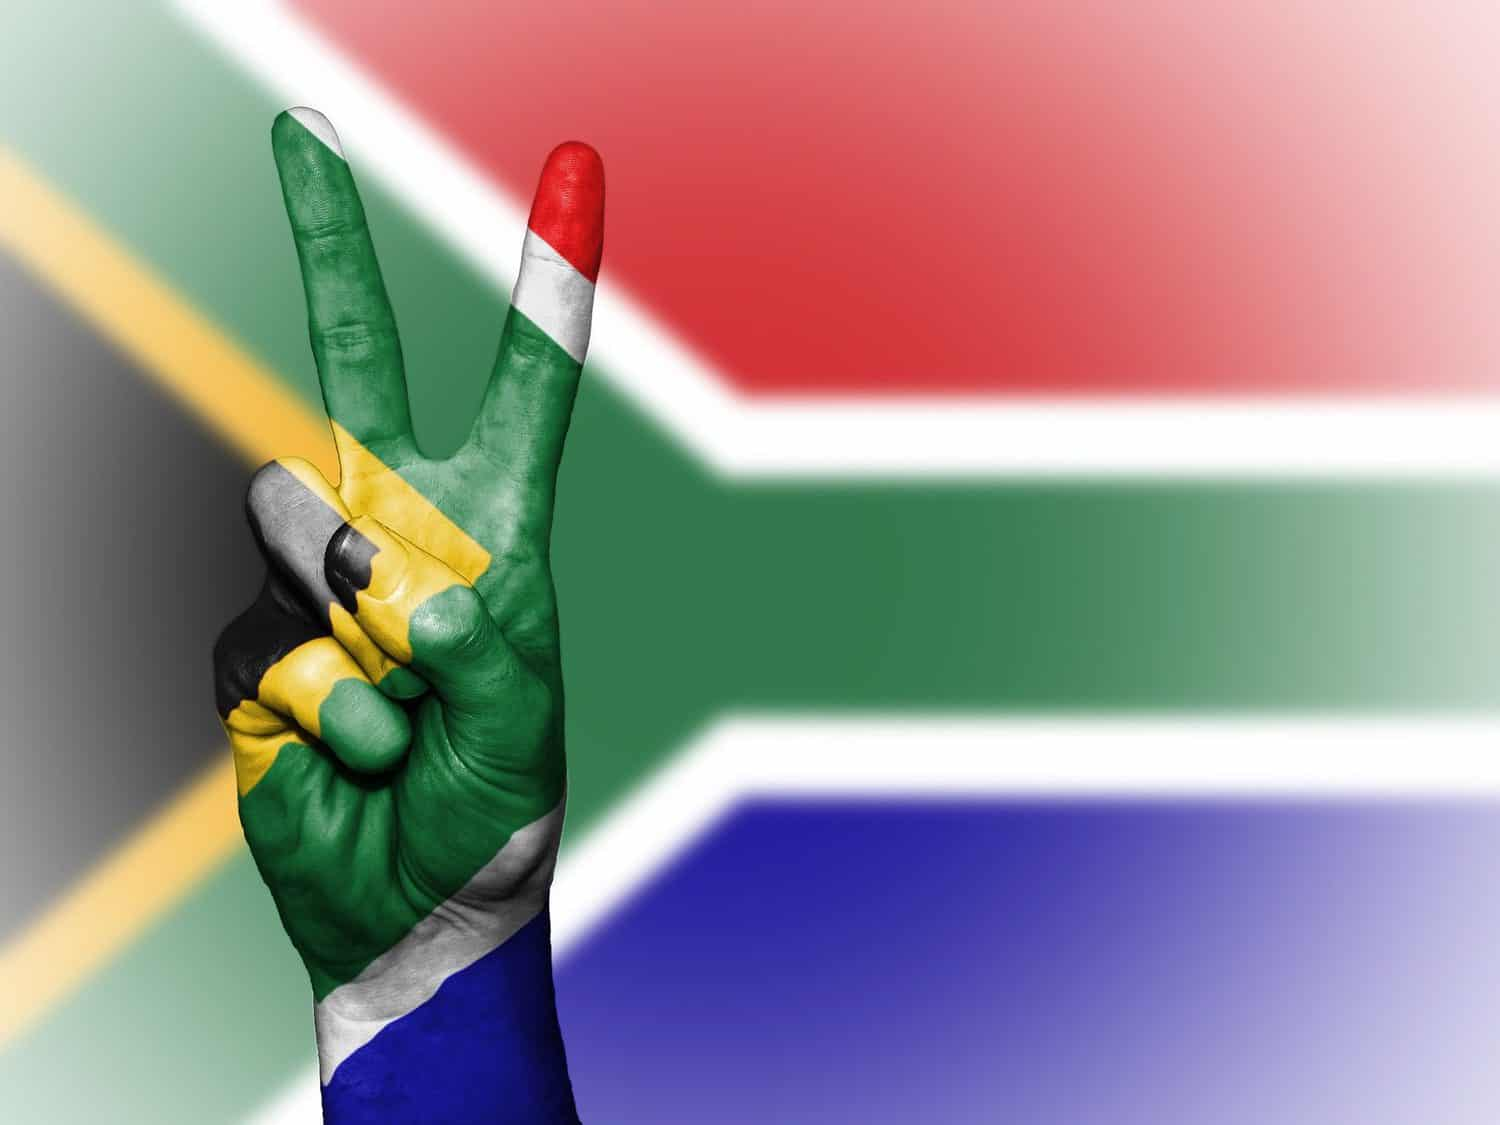 26.7 million South Africans are registered to vote in the sixth general elections.